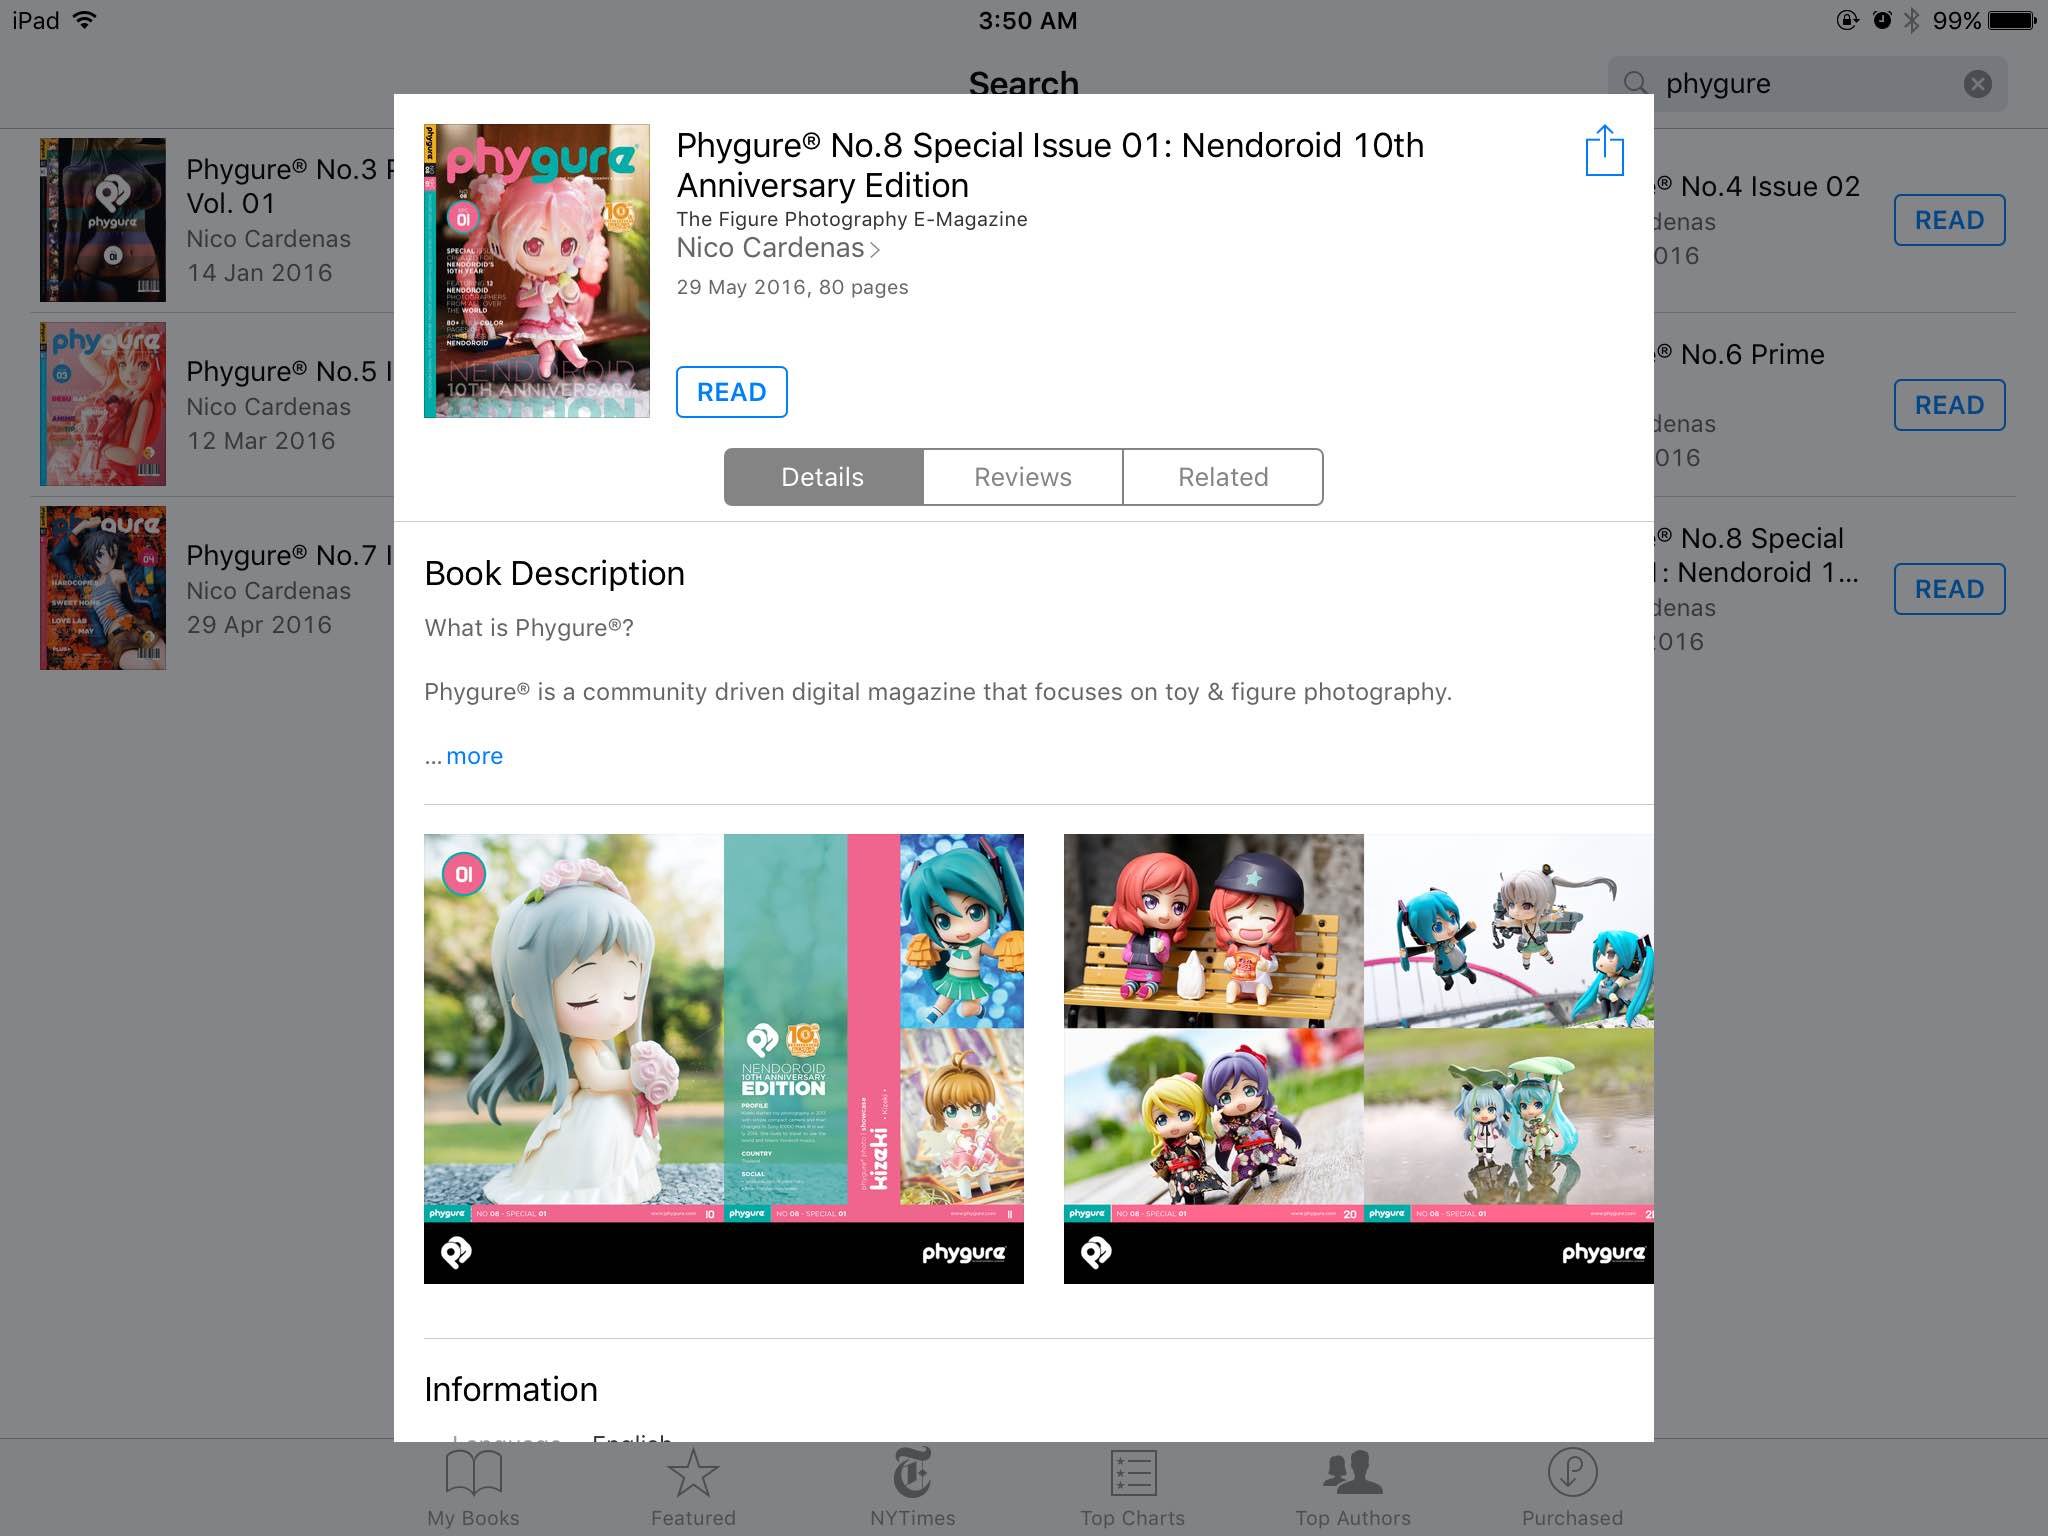 Phygure® No.8 Special Issue 01: Nendoroid 10th Anniversary Edition as seen on Apple iBooks.